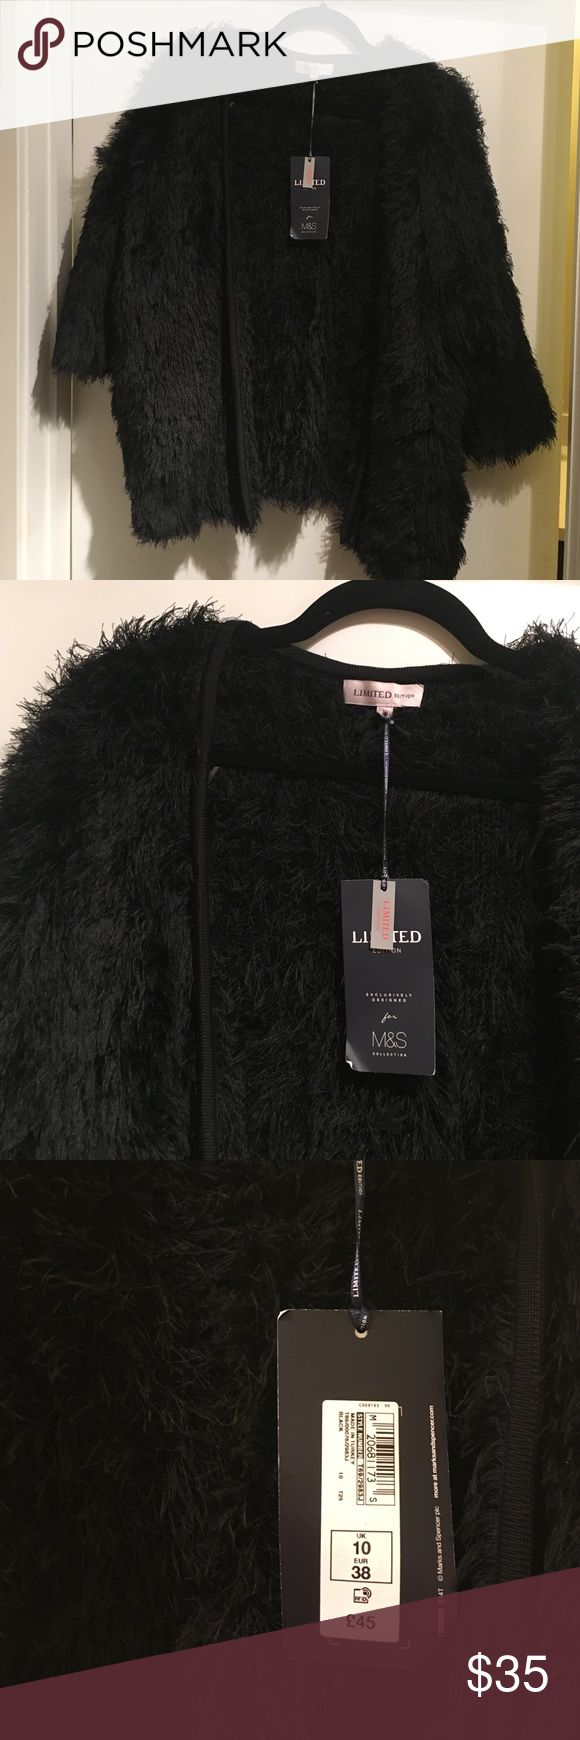 Marks & Spencer NWT Black Jacket Stunning Marks & Spencer jacket. New with tags! Size 38/10 UK/8 women's US Marks and Spencer Jackets & Coats